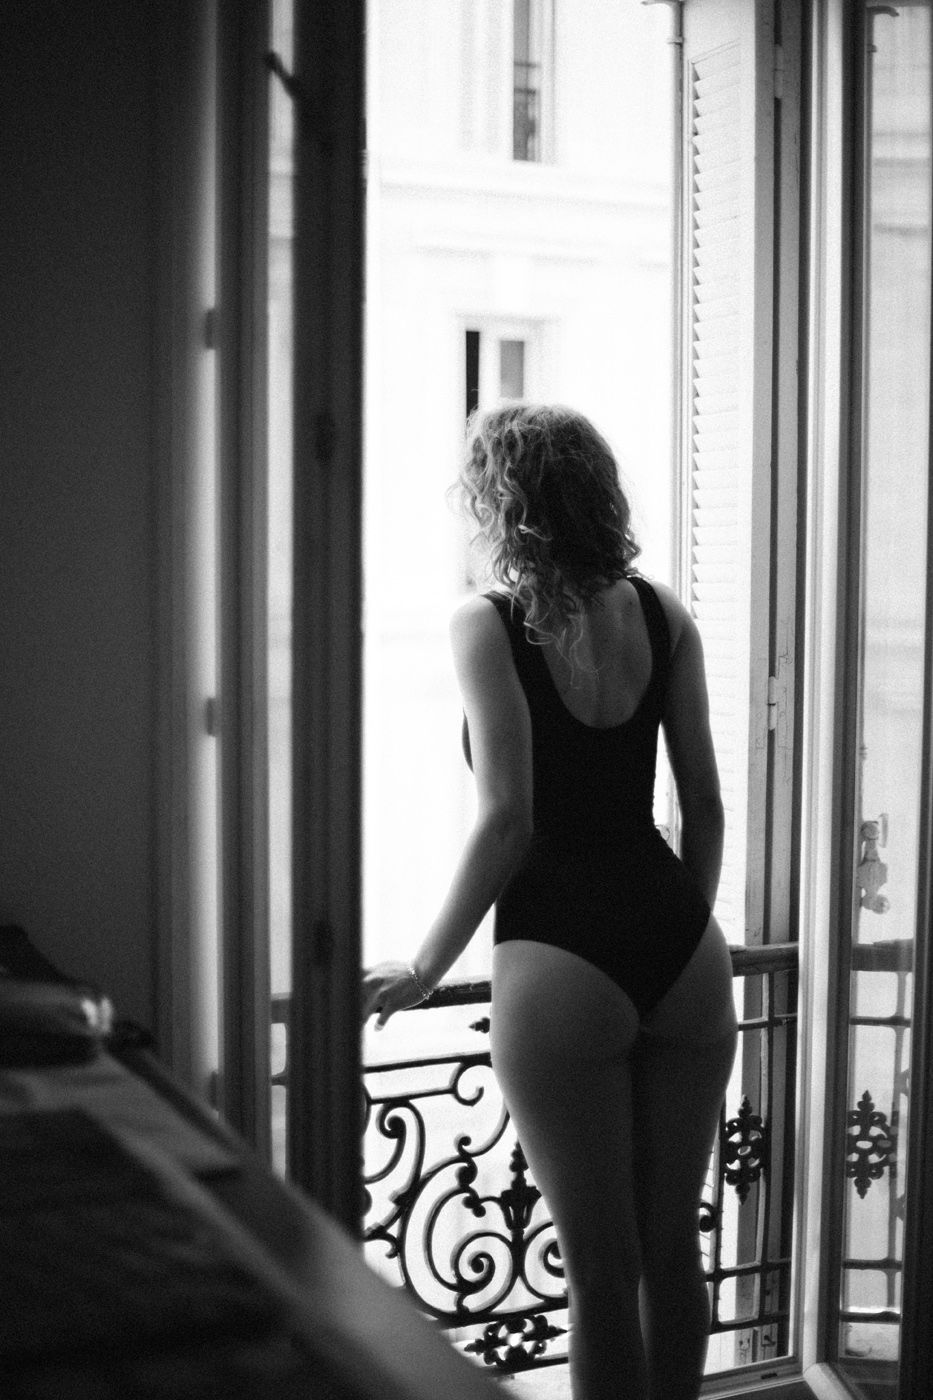 Stop wishing. Start living .. Women  Sébastien Pastor photography photographer models model lionsmag lions magazine lingerie fashion editorial Delphine Donnadieu body blackandwhite   // lionsmag.com - premium nude photography magazine